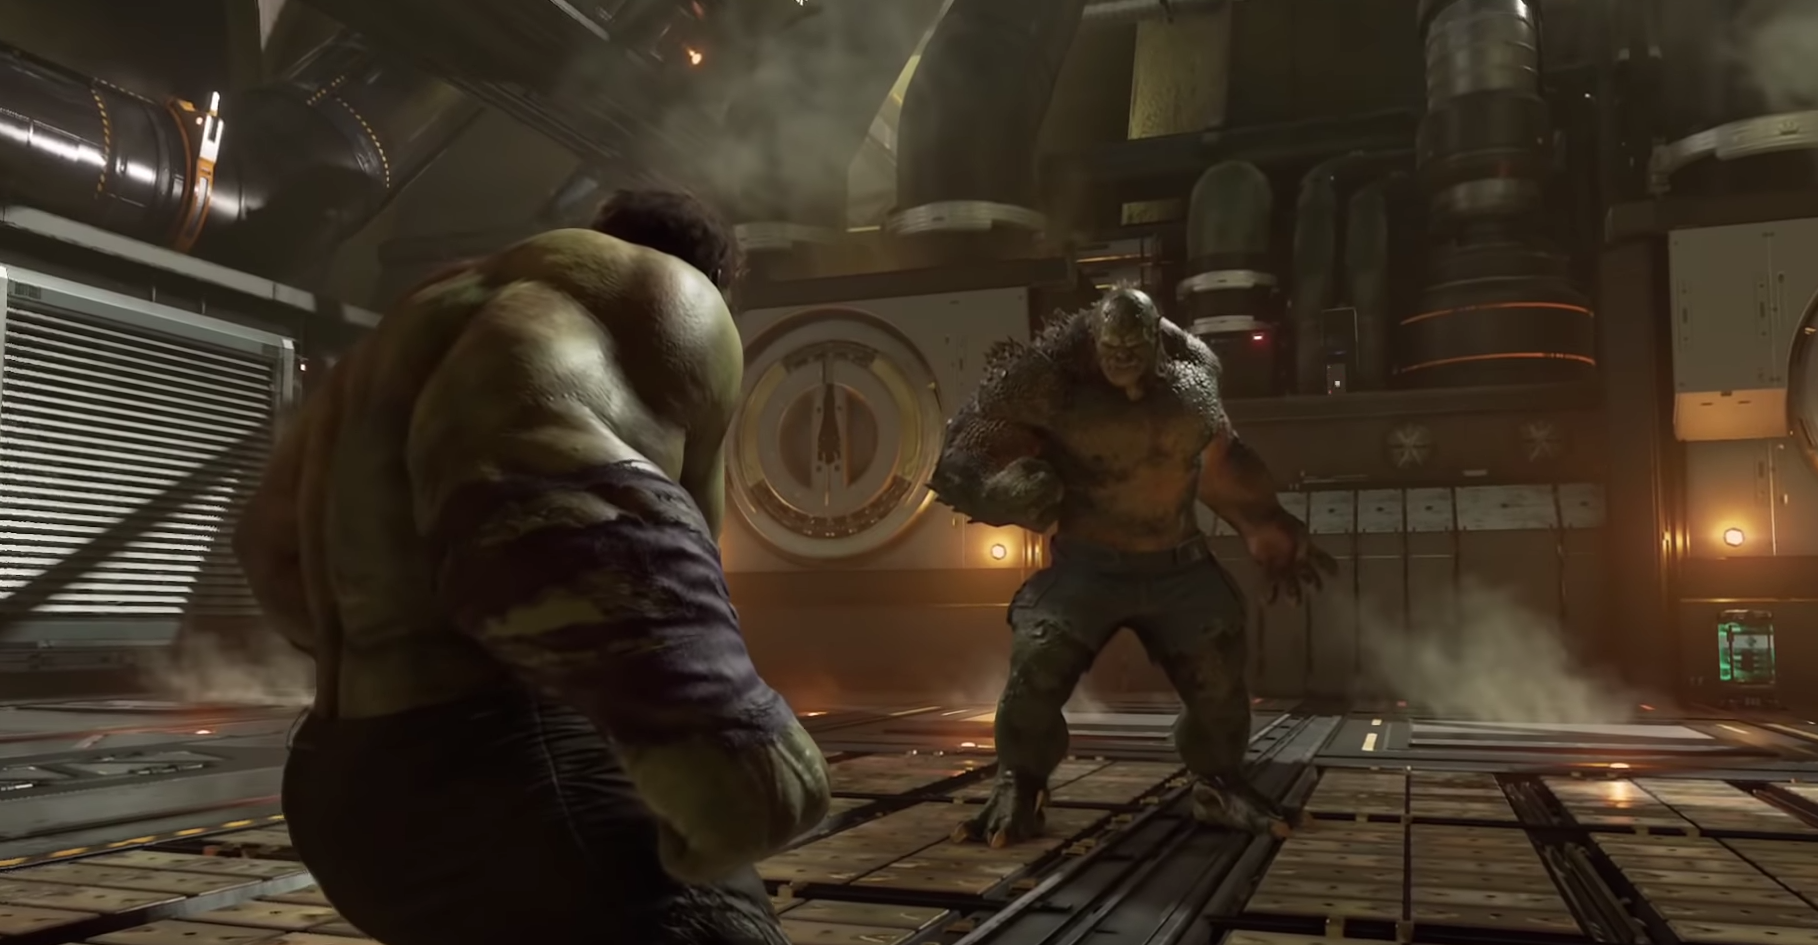 Hulk and Abomination square off against each other.